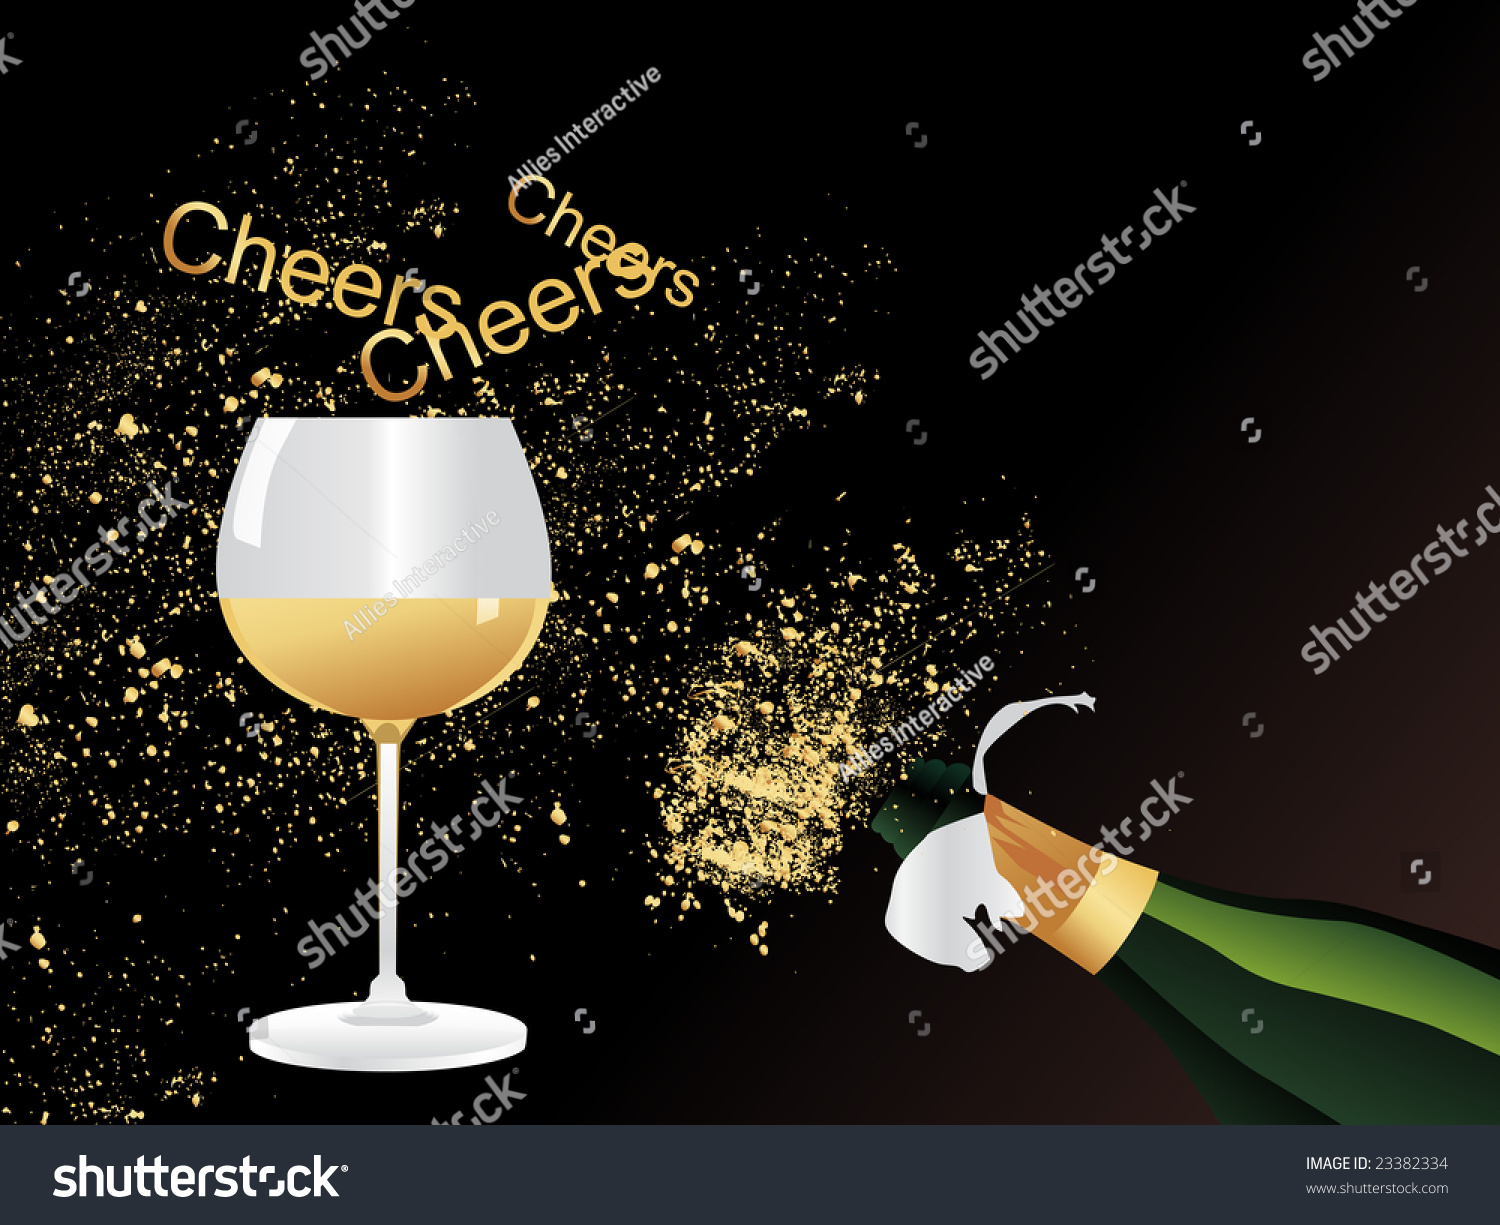 Stock Photo Vector Wallpaper Champagne Explosion